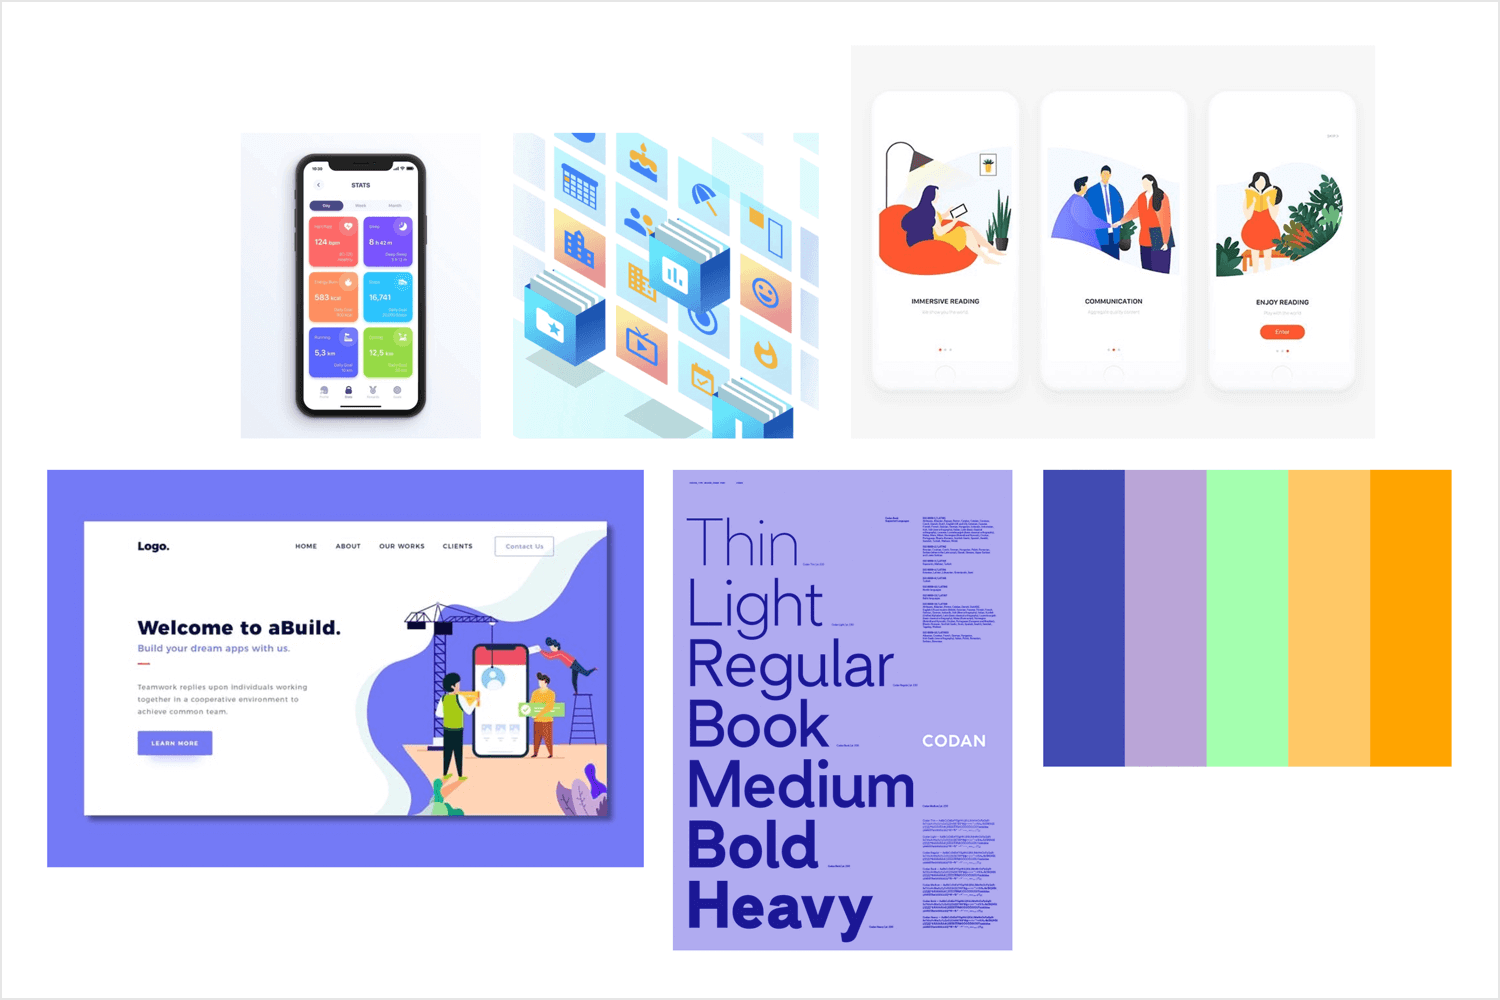 App mood board example - style, font and other touchpoint